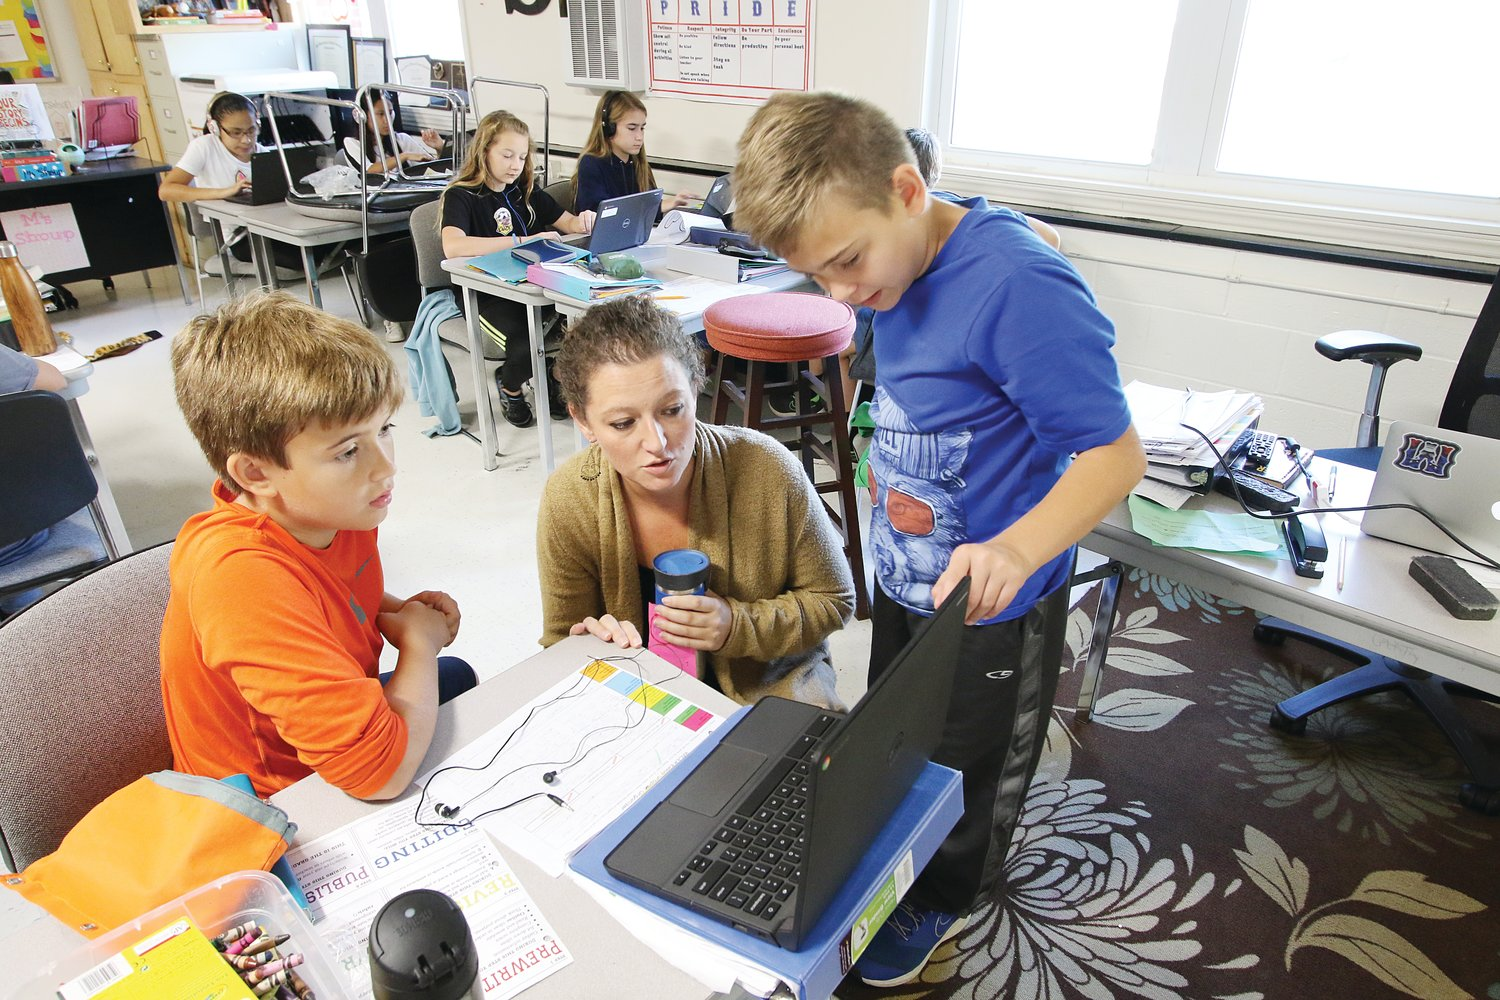 Moncure School's Alicia Shoup works with 5th-graders Lucas Ferri (left) and Gunnar Goodwin.